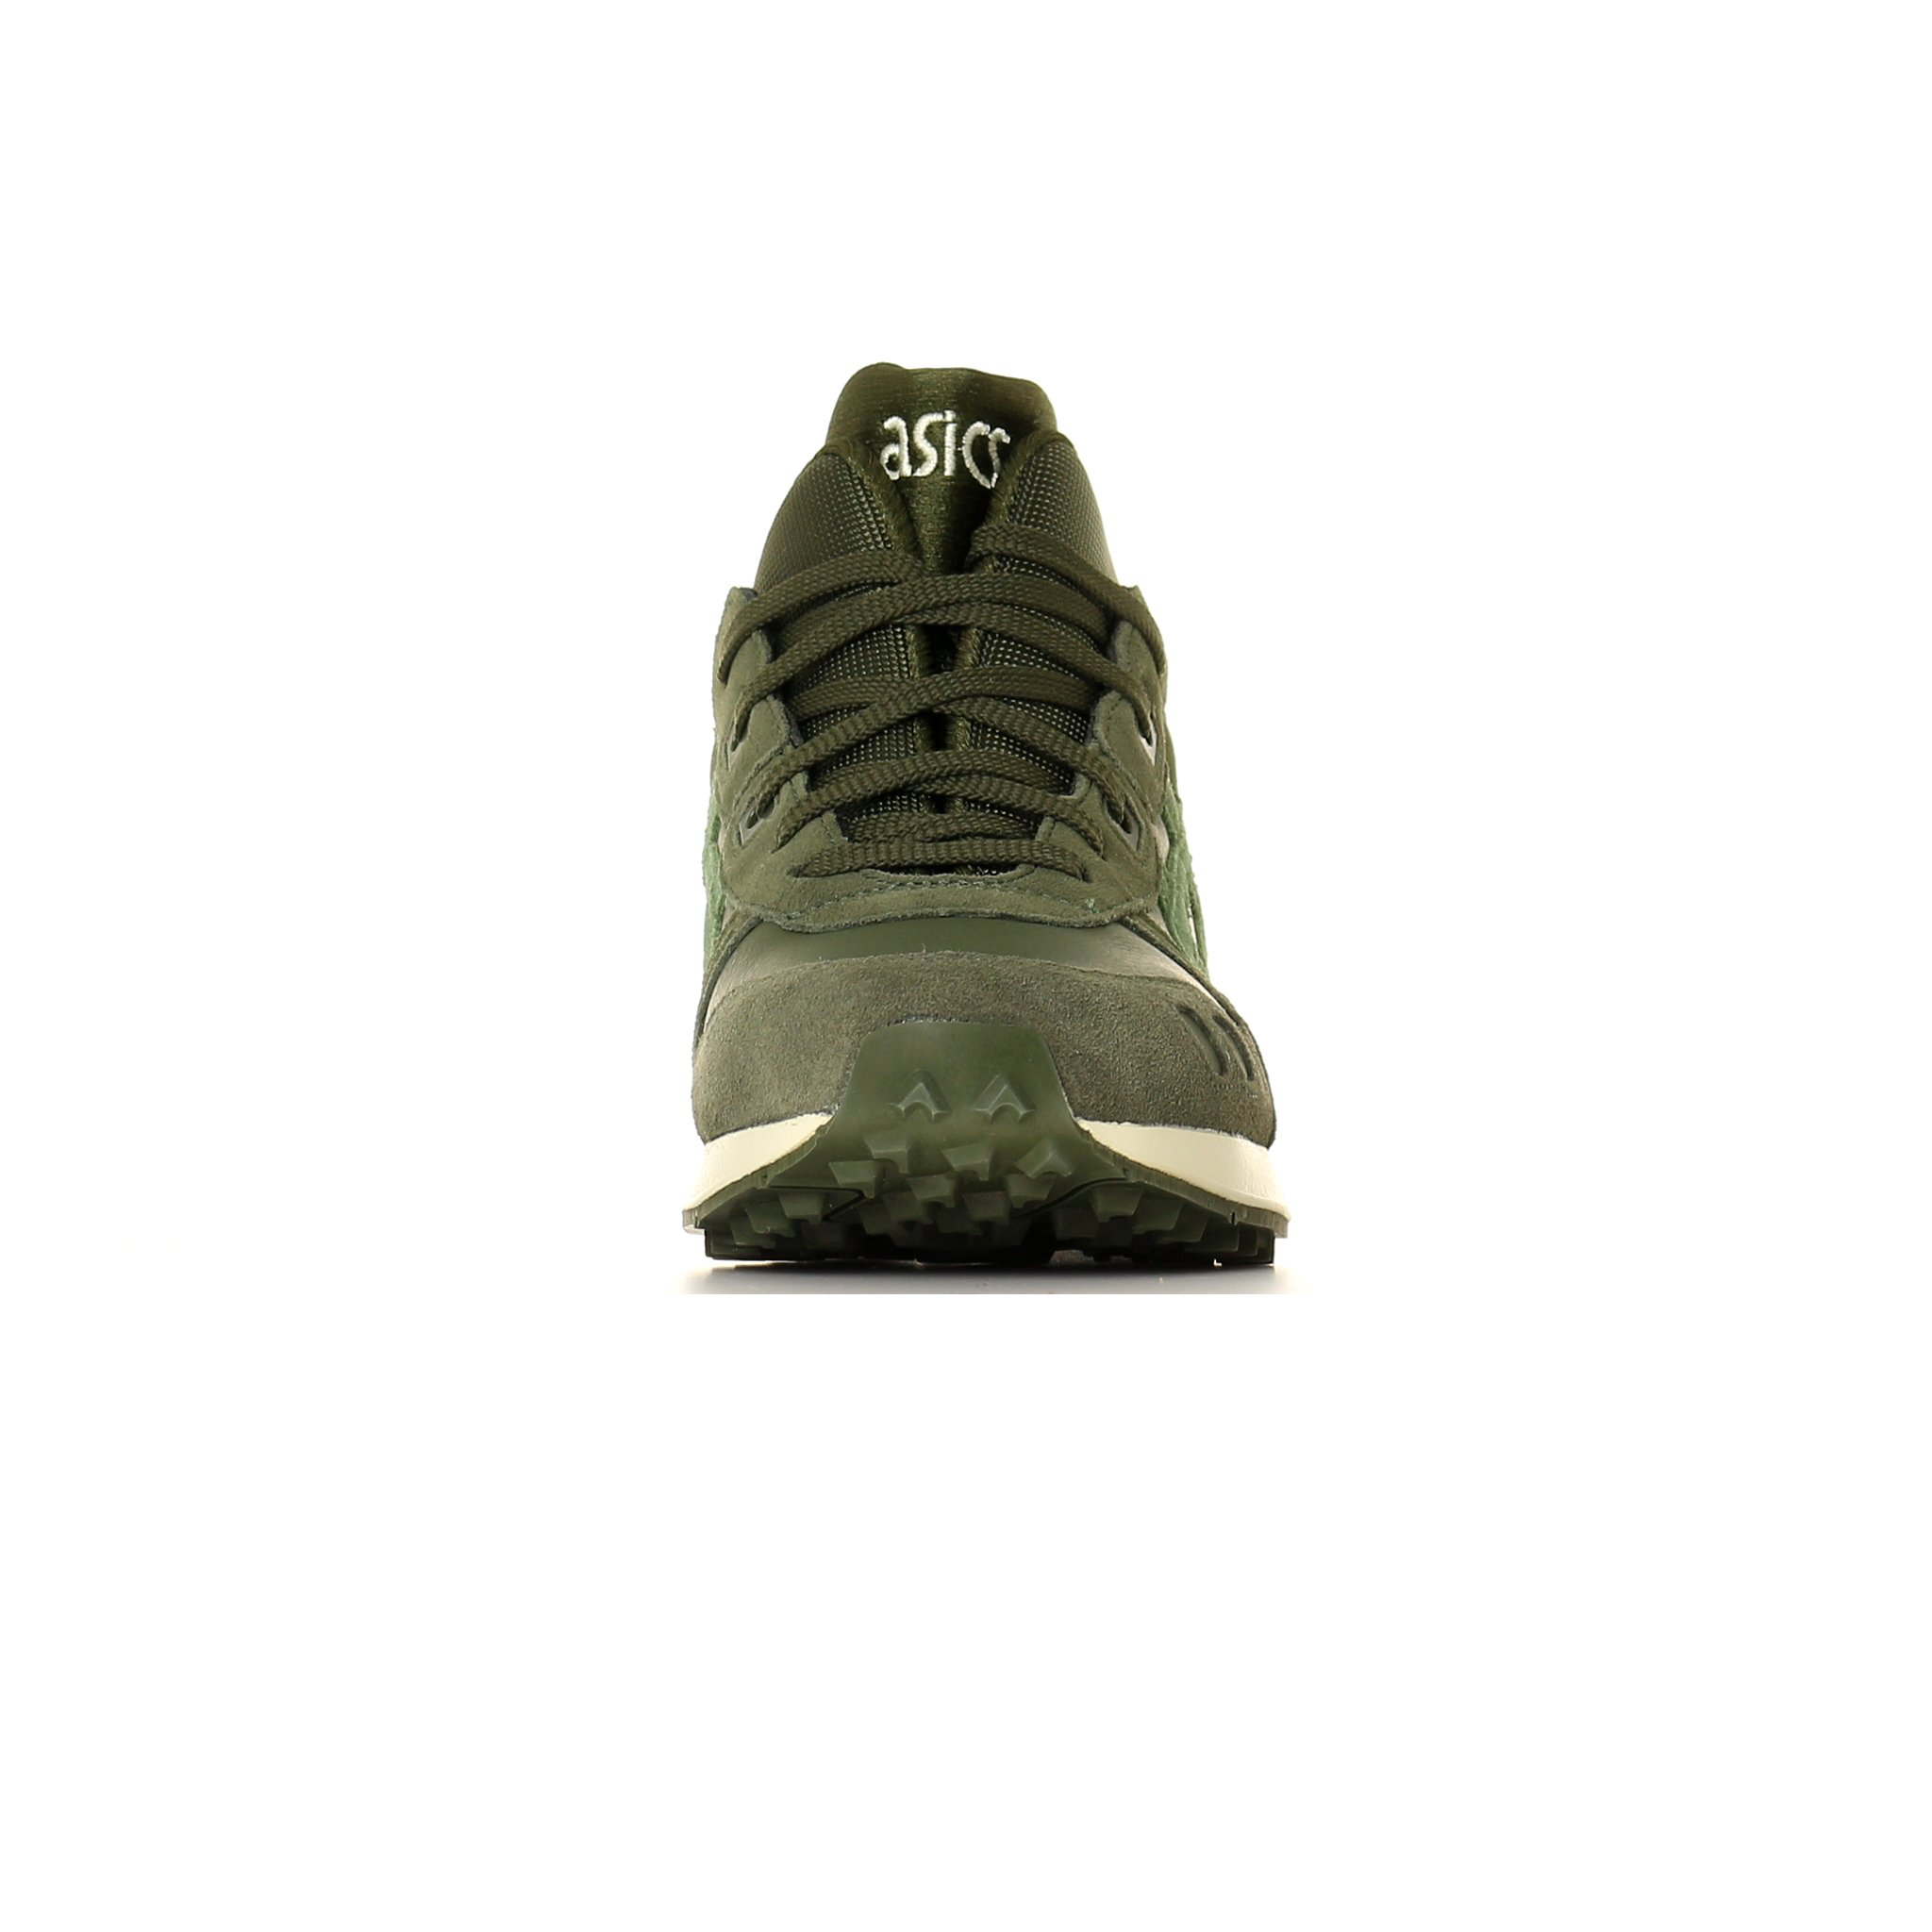 new style 6f280 dc8d4 Asics Tiger Gel-Lyte MT - Forest / Moss - UK 11 | Products ...